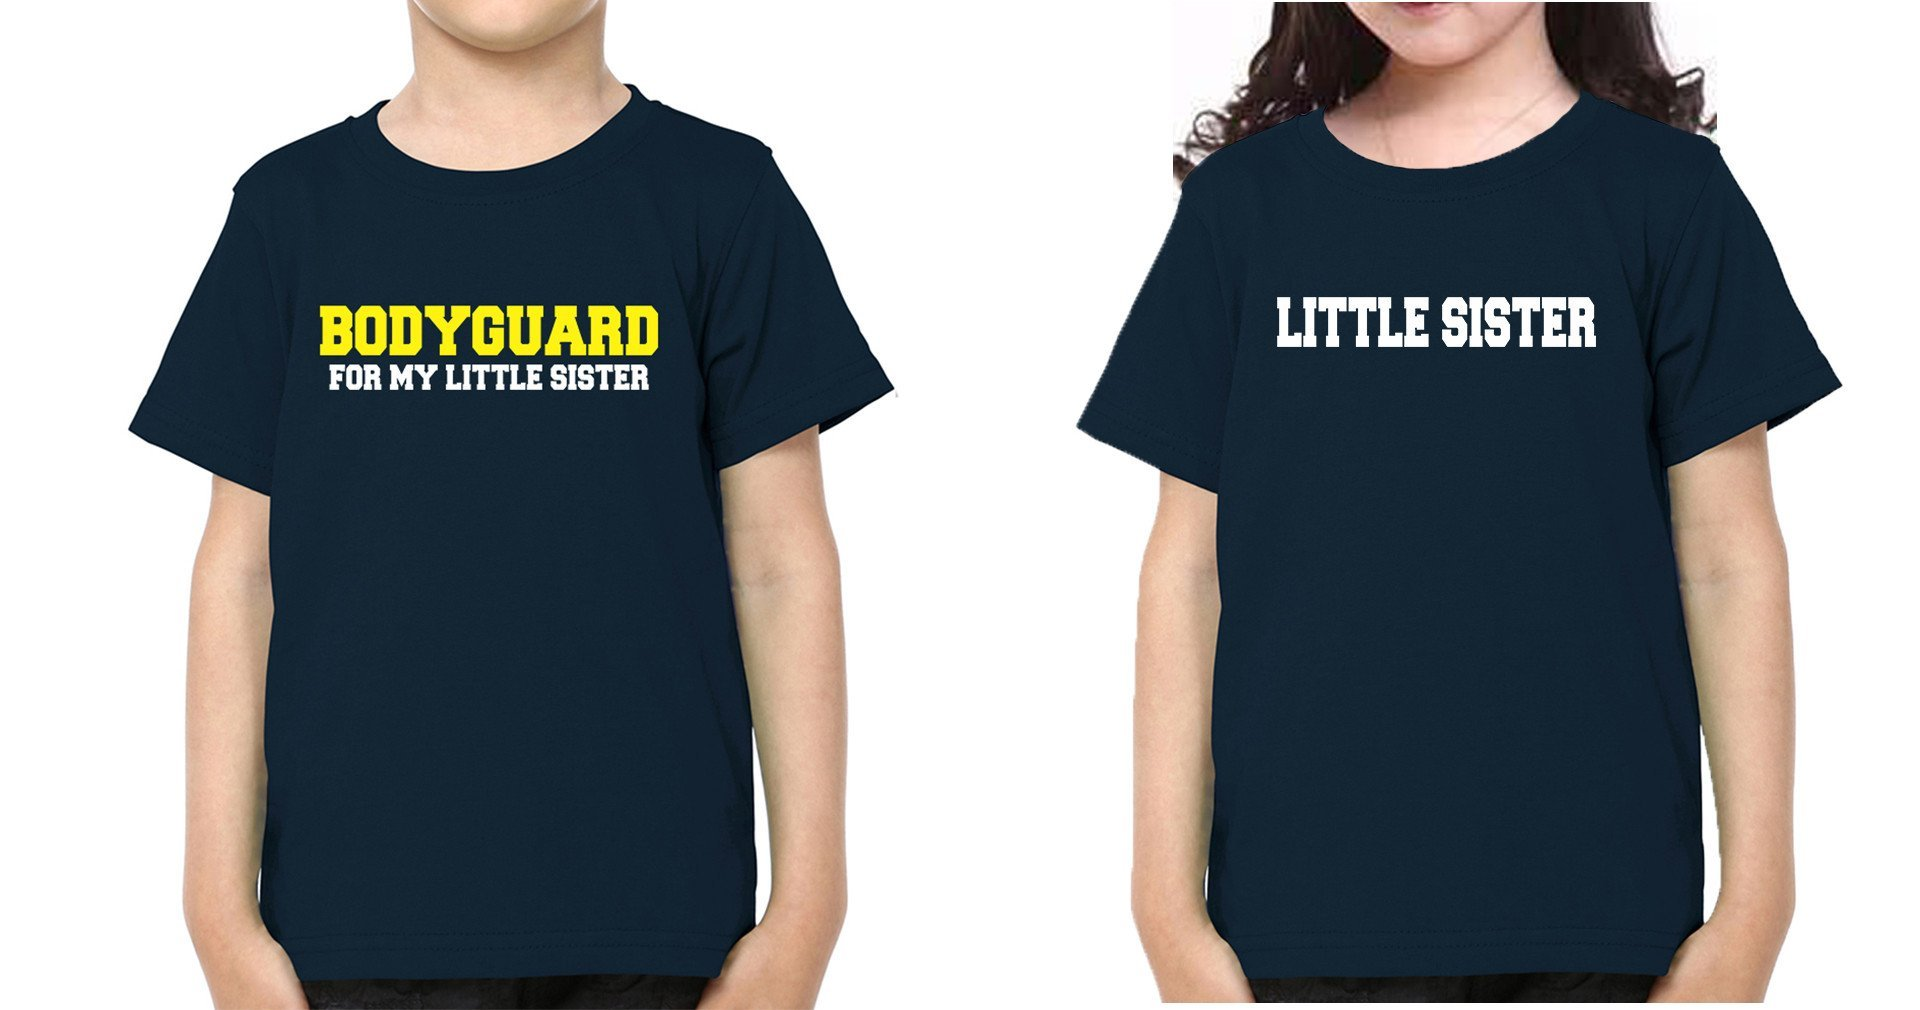 ektarfa.com @ Buy Best T-shirts Online in India Brother Sister T-Shirts Bodyguard For My Lil Sis kid Brother Sister T Shirts